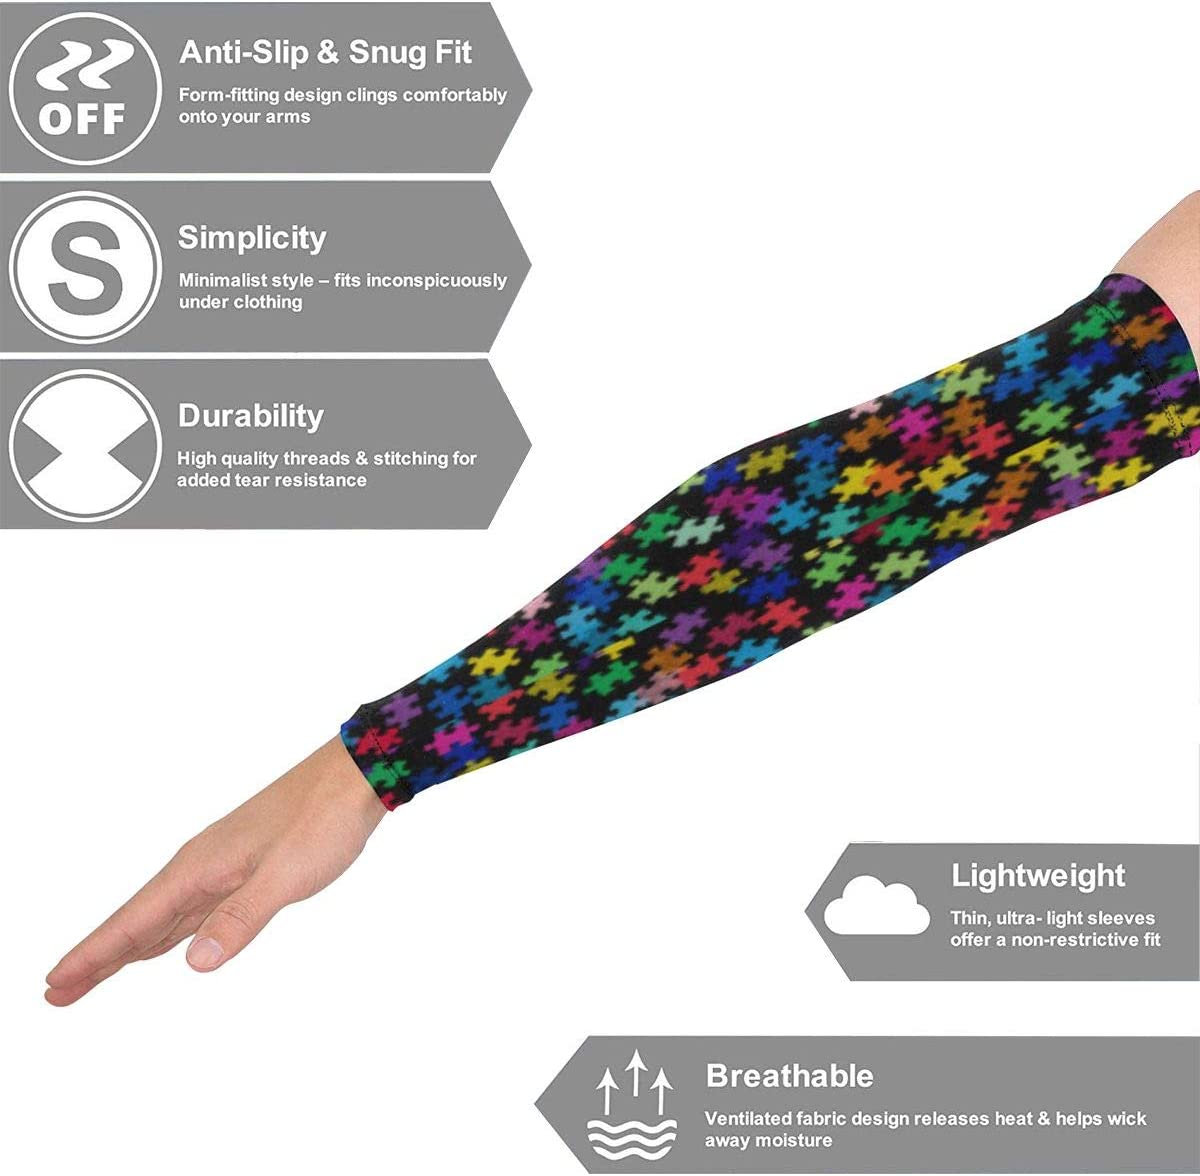 NTQFY Autism Awareness Colorful Puzzle Piece Arm Cover 2Pcs//Pair Unisex Cooling Arm Sleeves Stretch SPF 50 Sun Sleeves Breathable Polyester Arm Guard for Hiking//Golf//Cycling//Fishing//Driving//Jogging